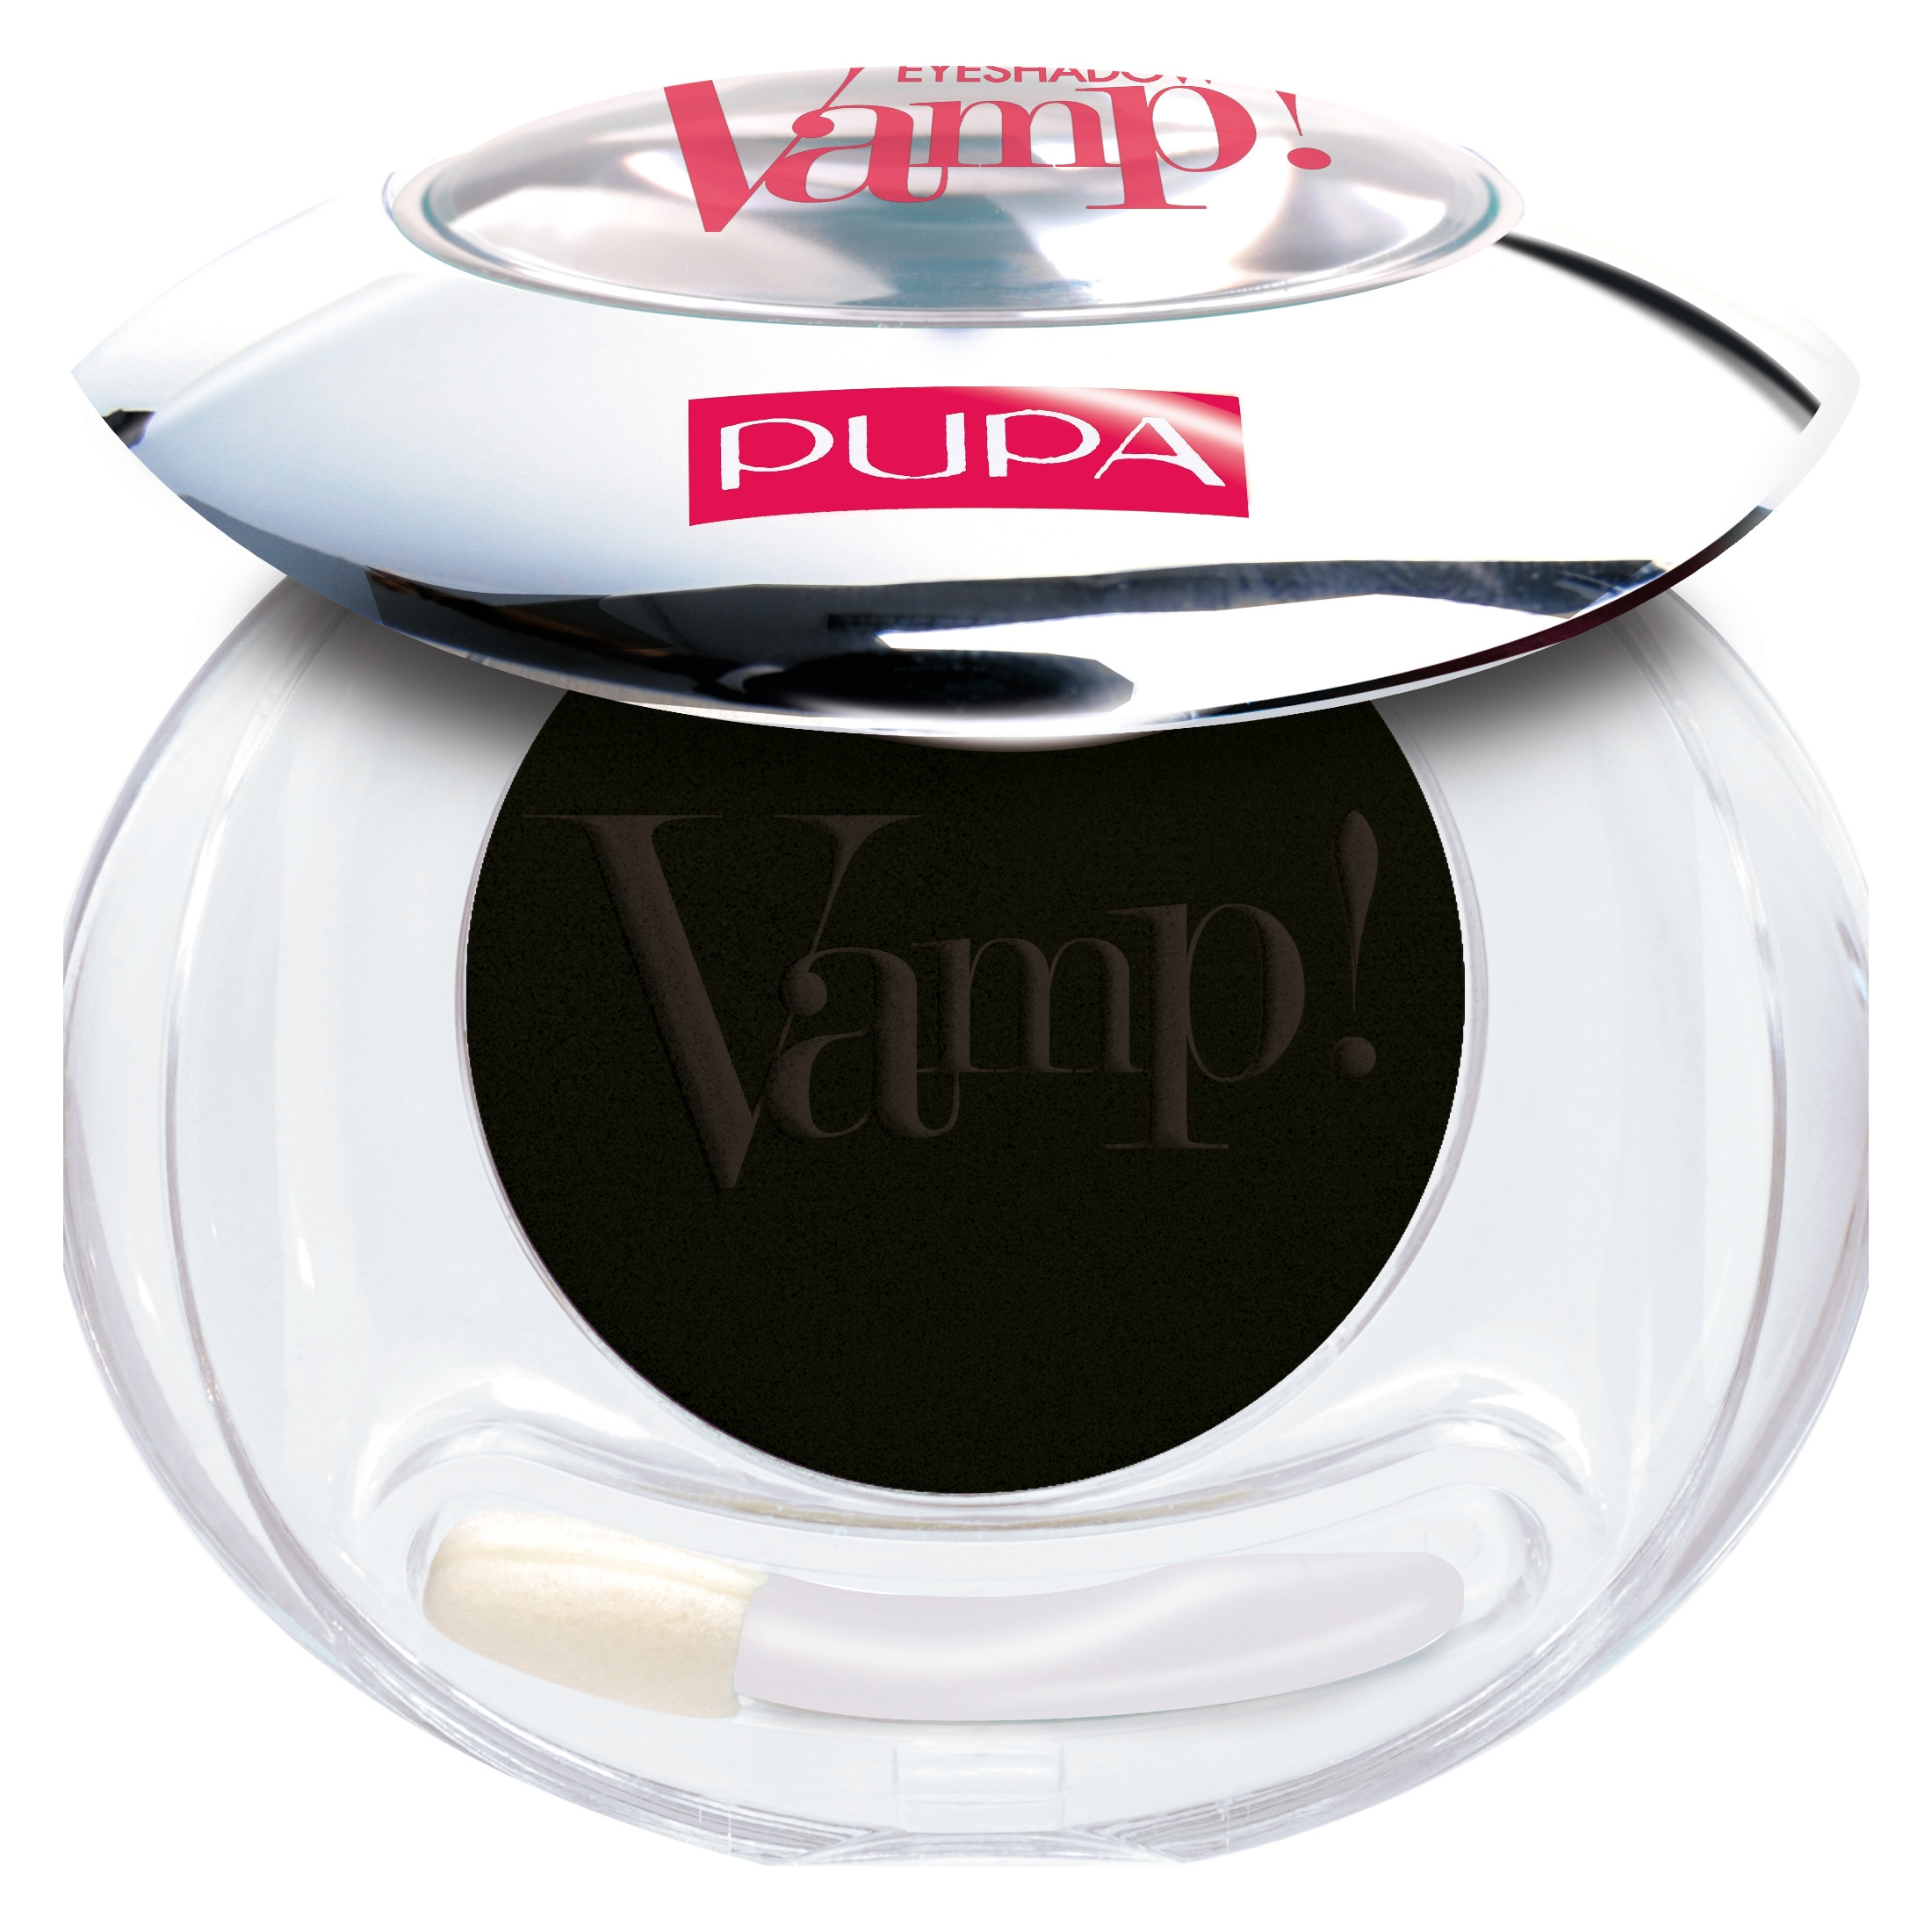 Pupa Vamp Compact Eyeshadow ombretto compatto colore puro n 405 Black Out Matt